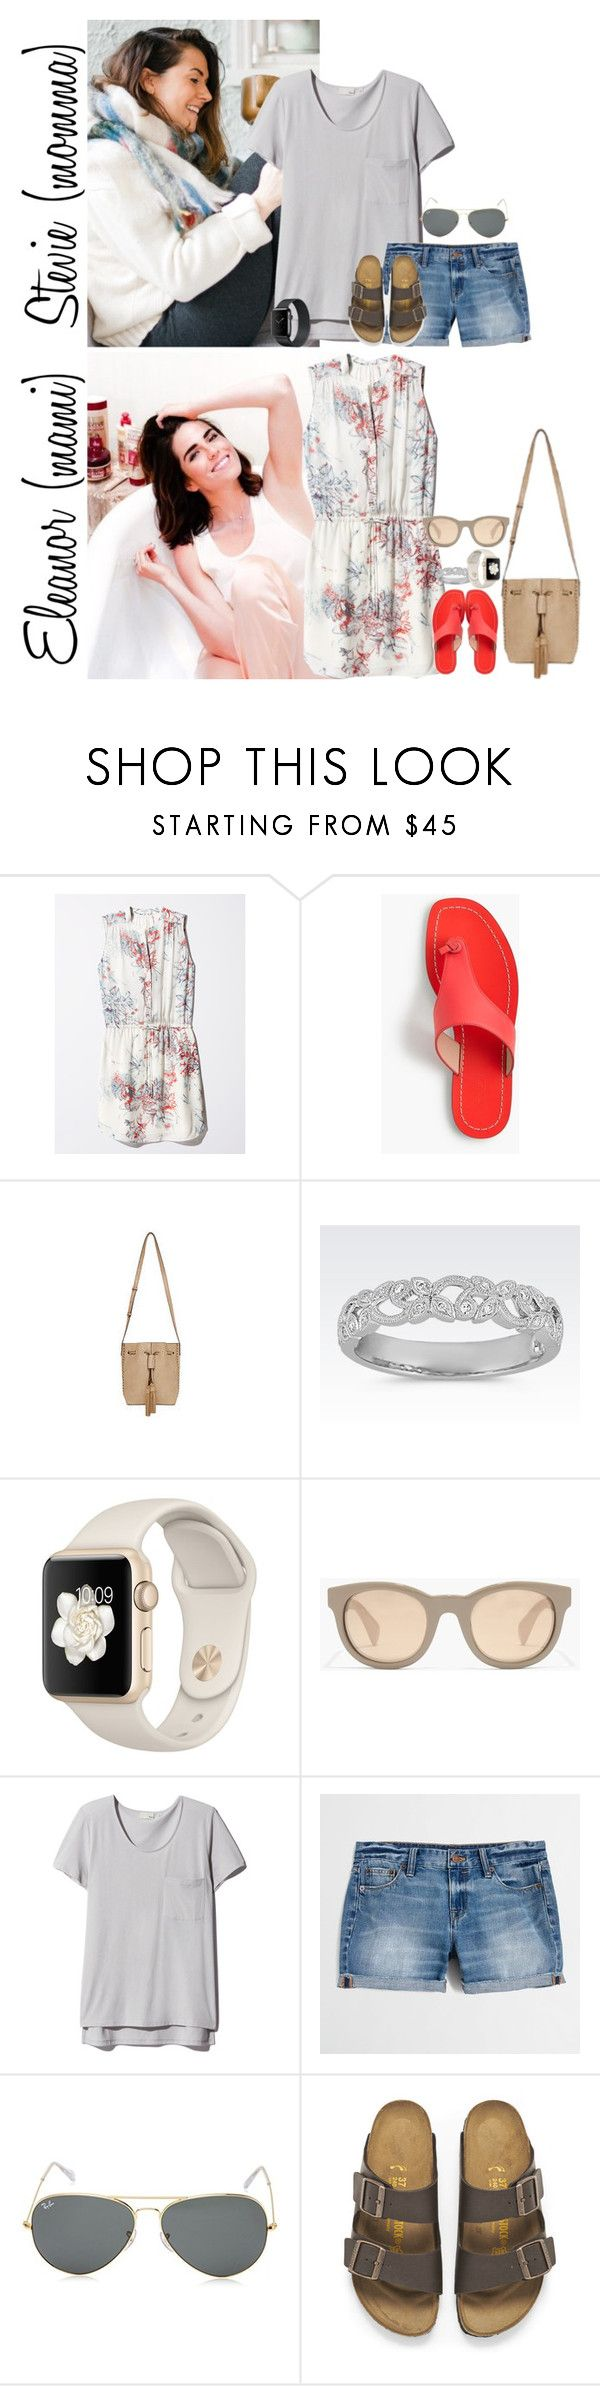 """""""Monday // Sam's Cast Comes Off, Park & Activities // 6.26.17"""" by graywolf145 ❤ liked on Polyvore featuring J.Crew, Ray-Ban, Birkenstock and StevieandEleanor"""